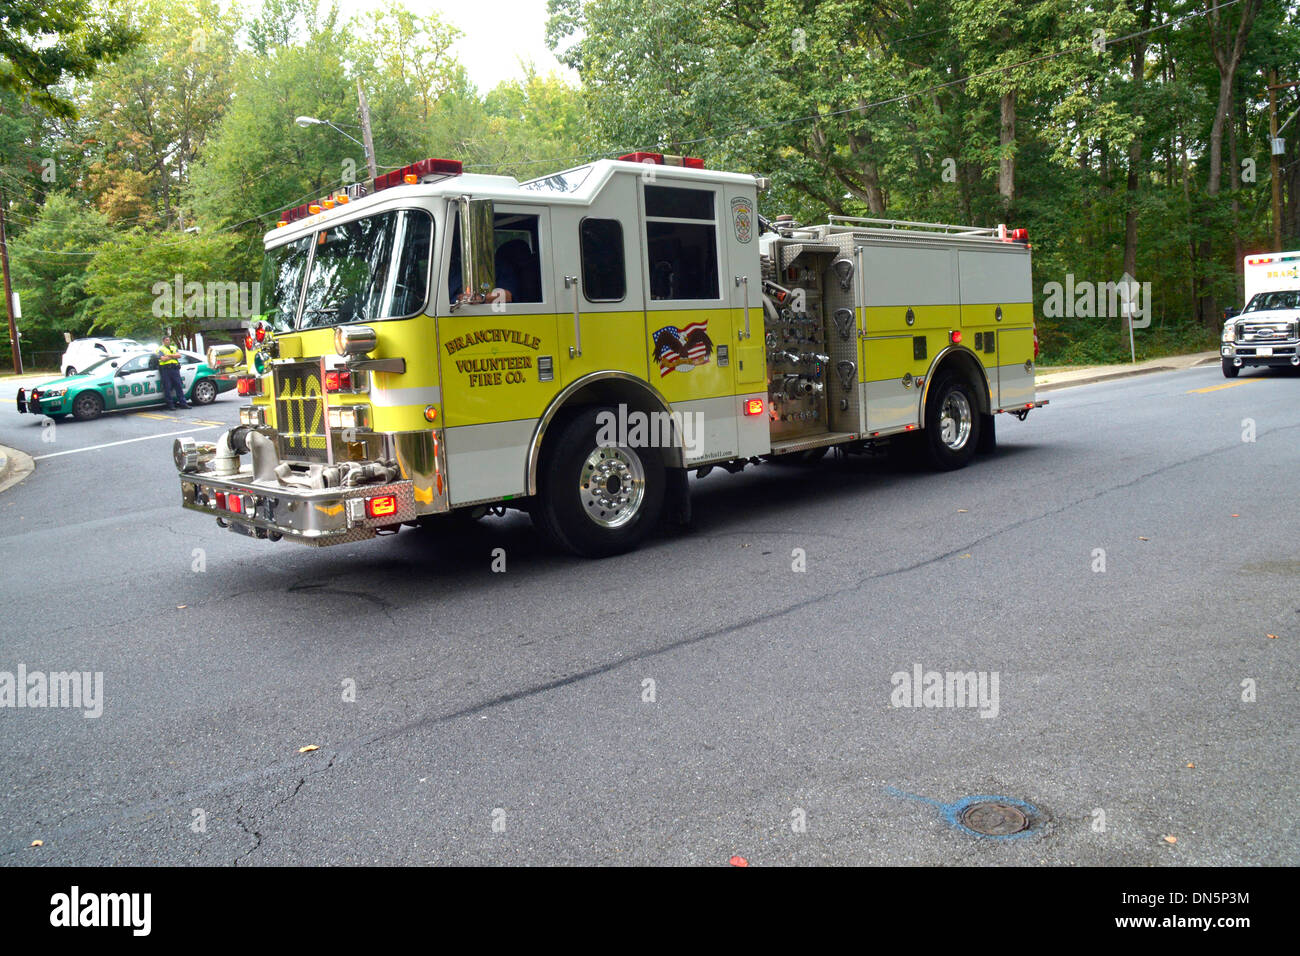 A Fire truck from the Branchville Volunteer Fire Department on a call - Stock Image